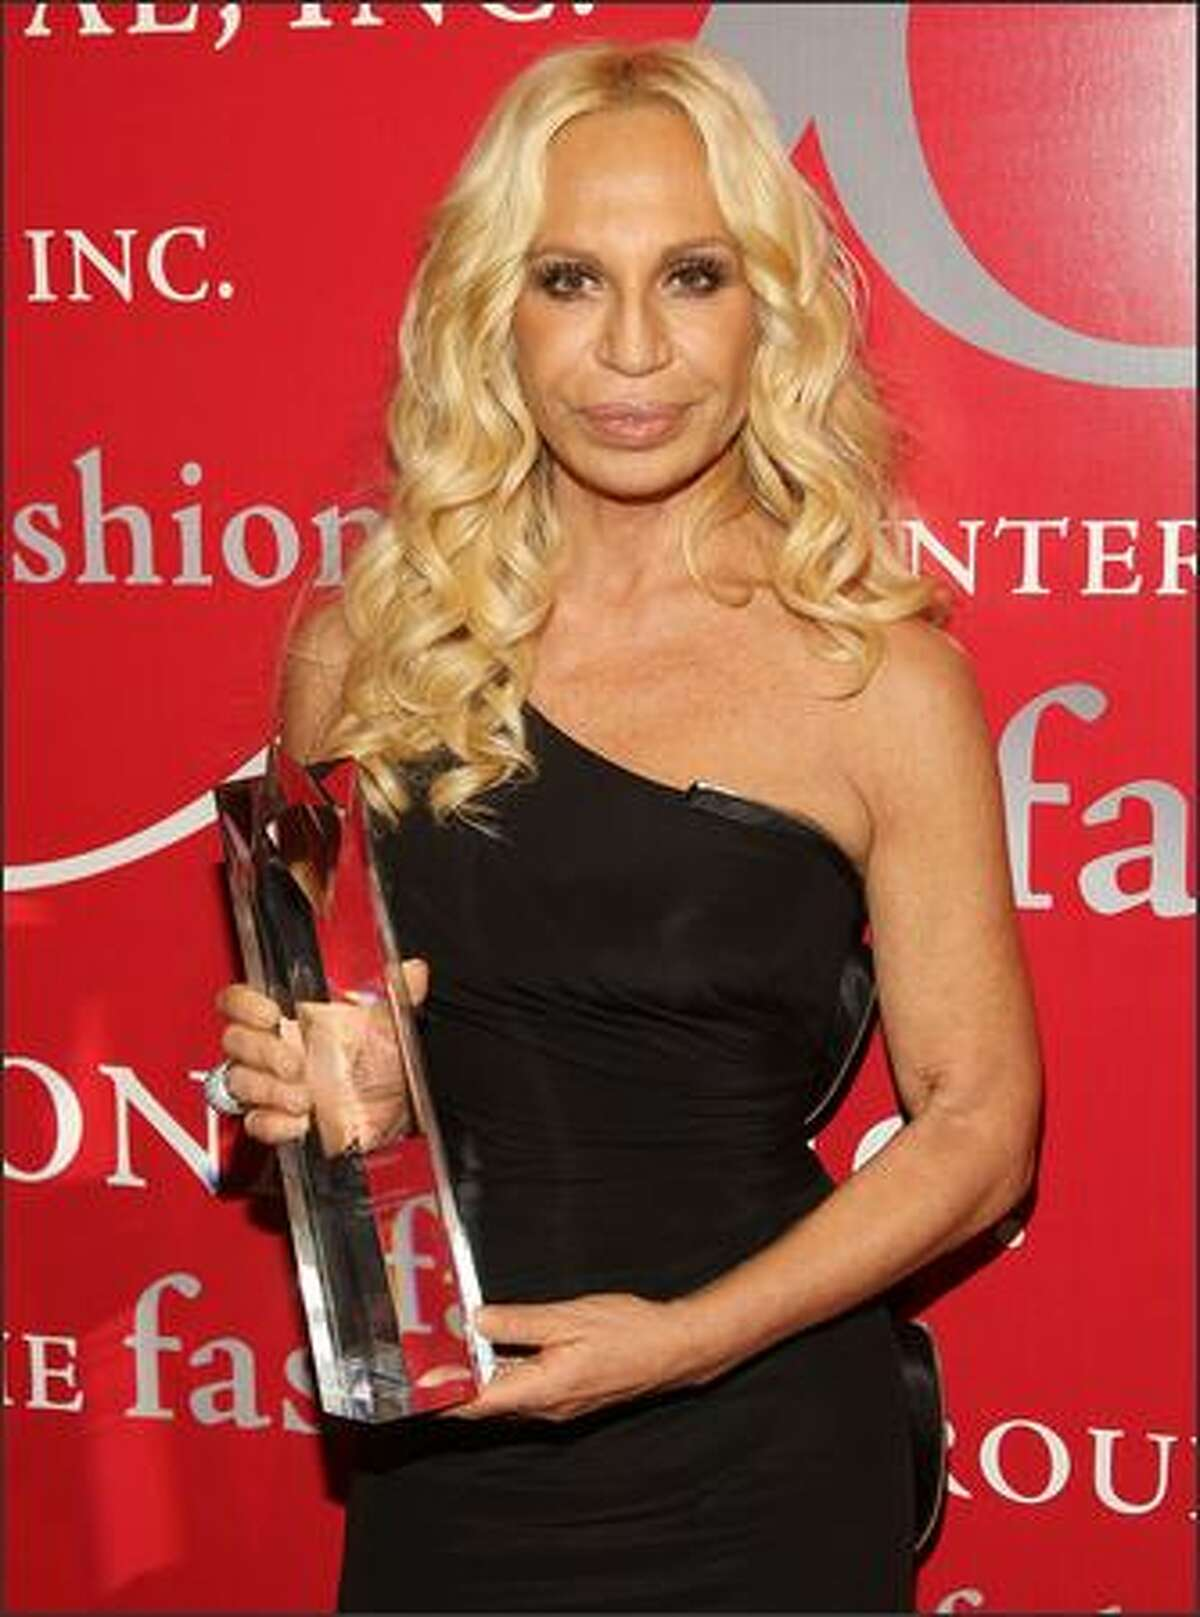 Designer Donatella Versace shows off her